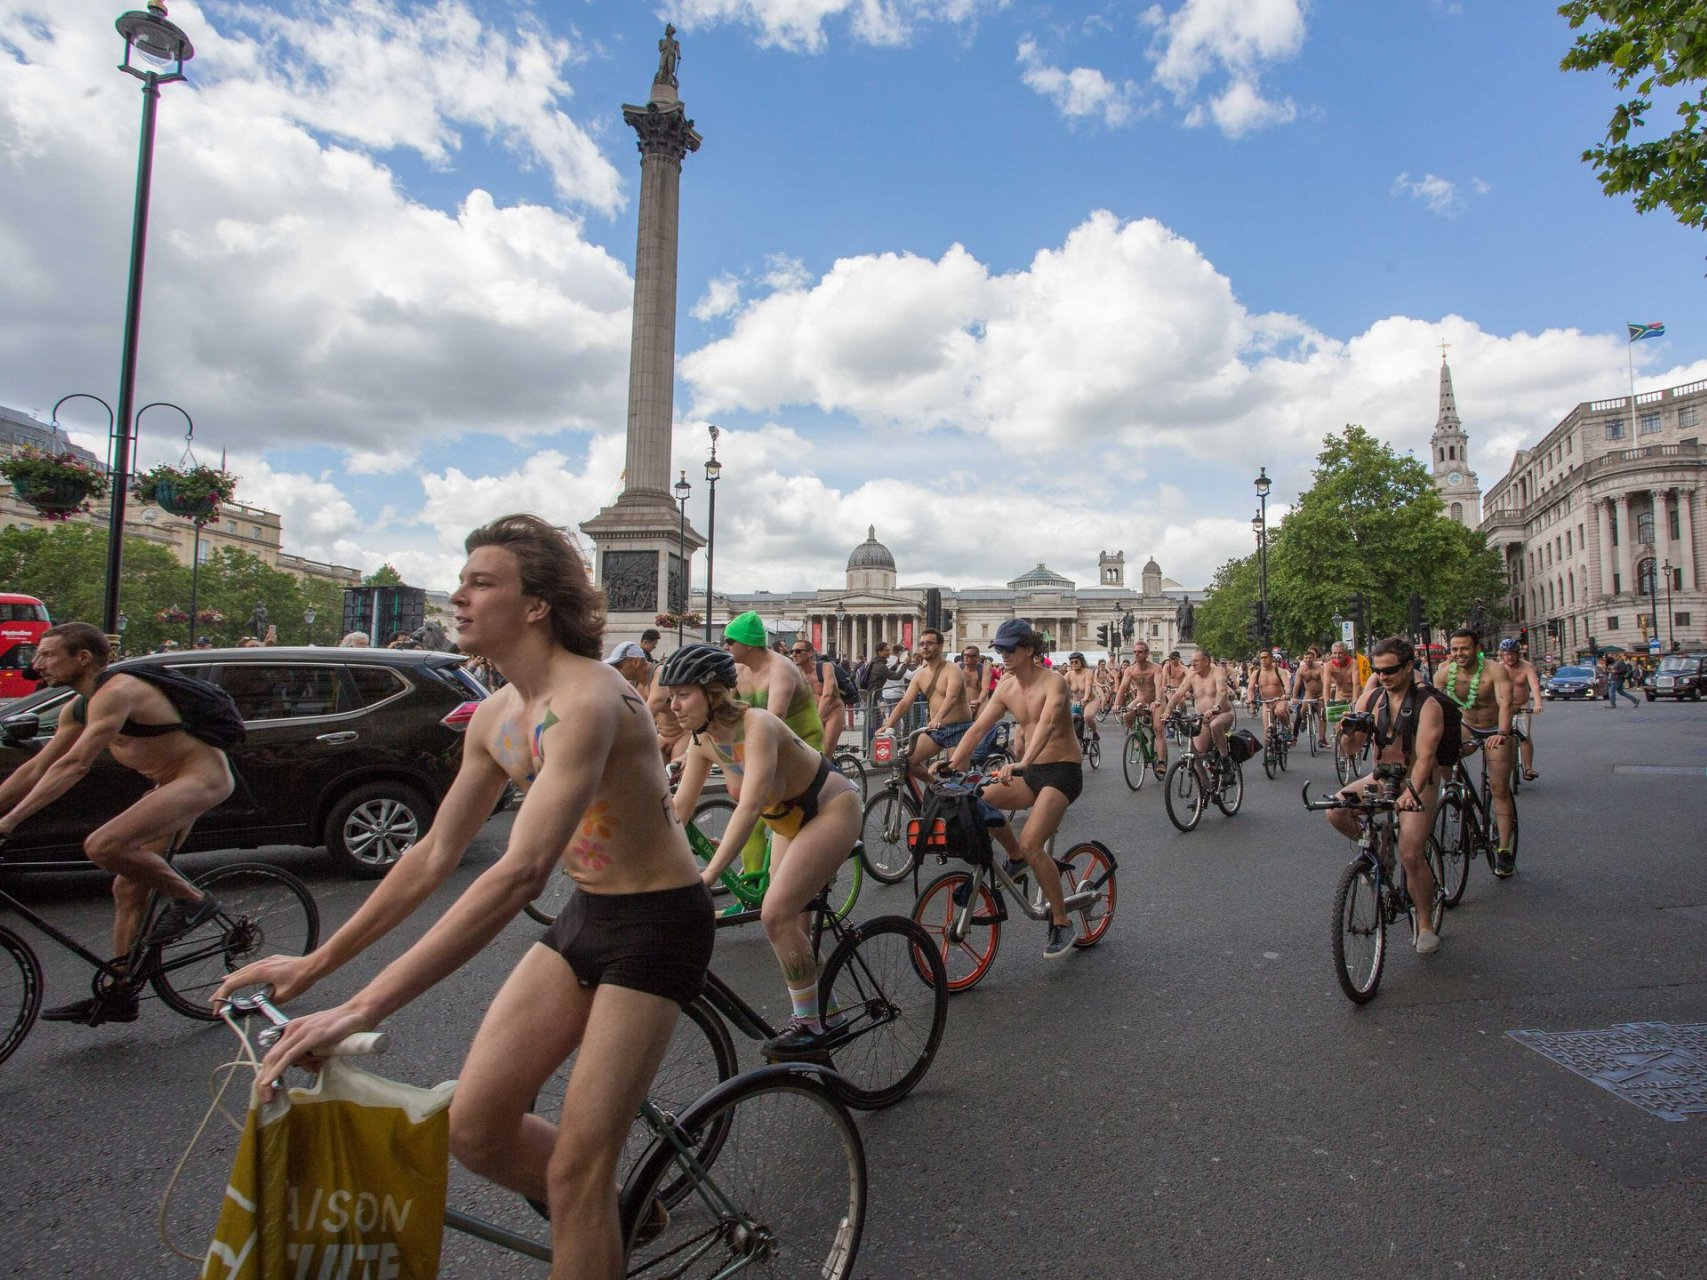 Philly naked bike ride called off because of the coronavirus